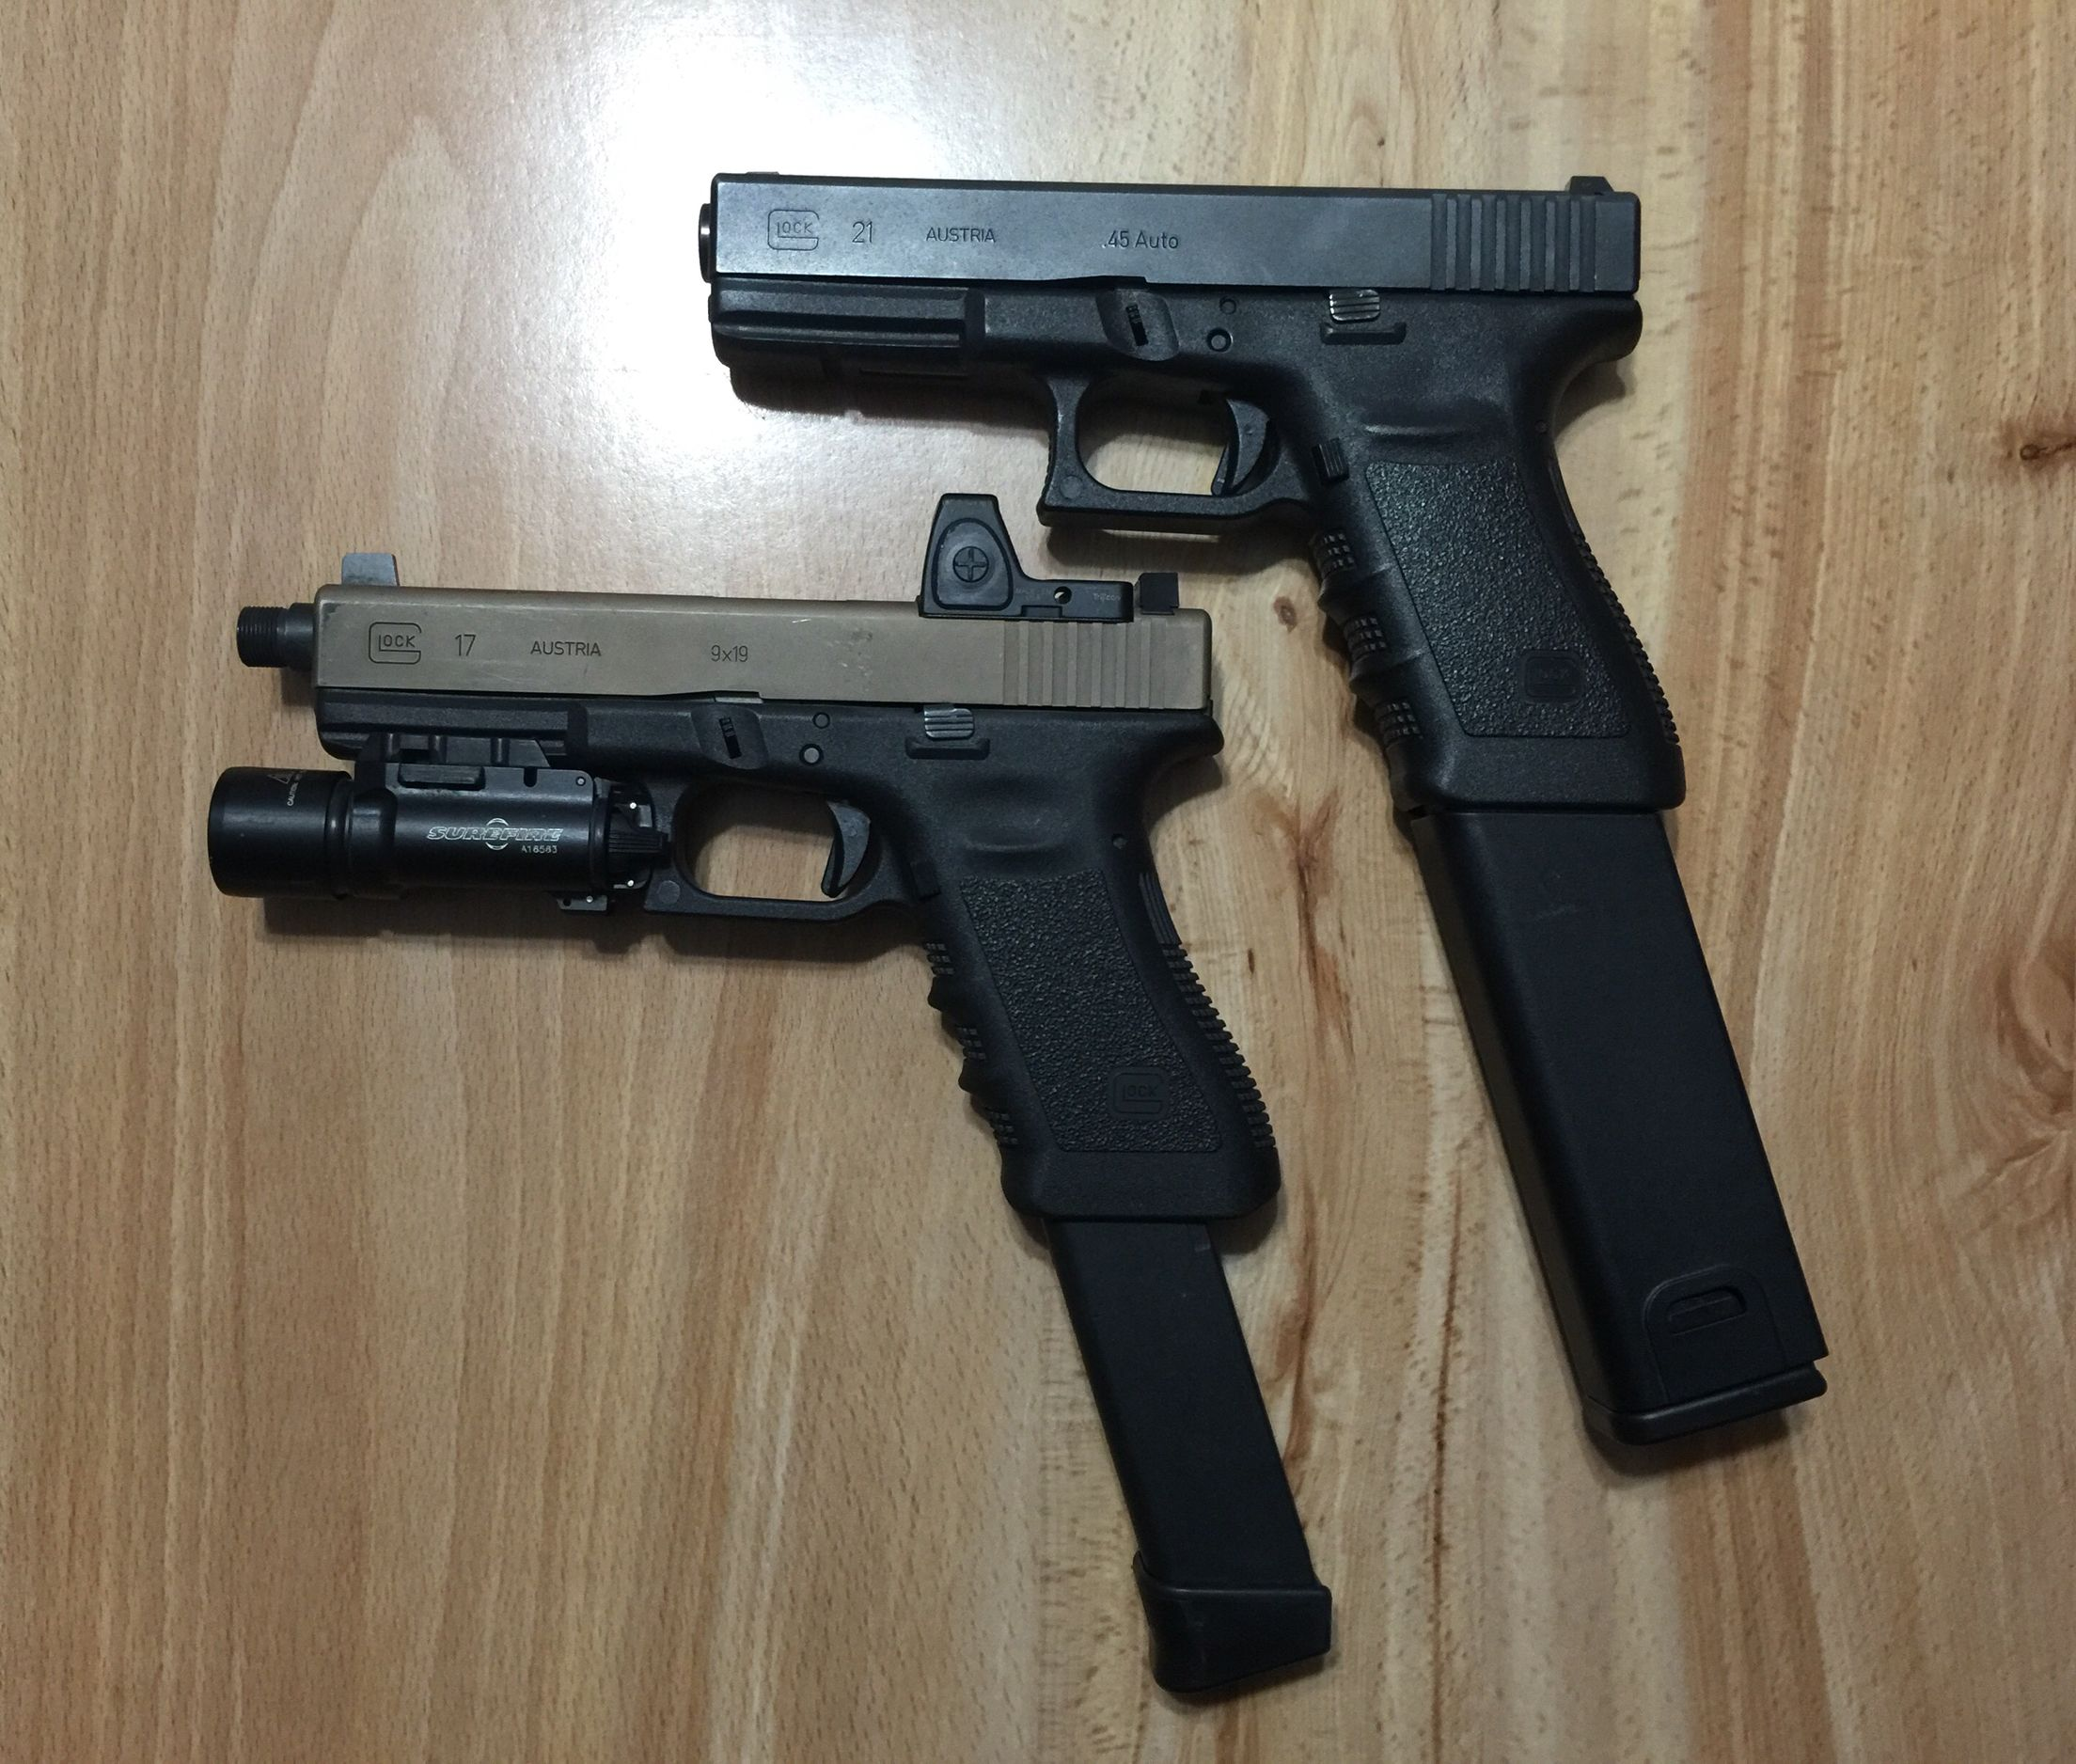 glock 21sf with kriss vector magazine extension and glock 17 with